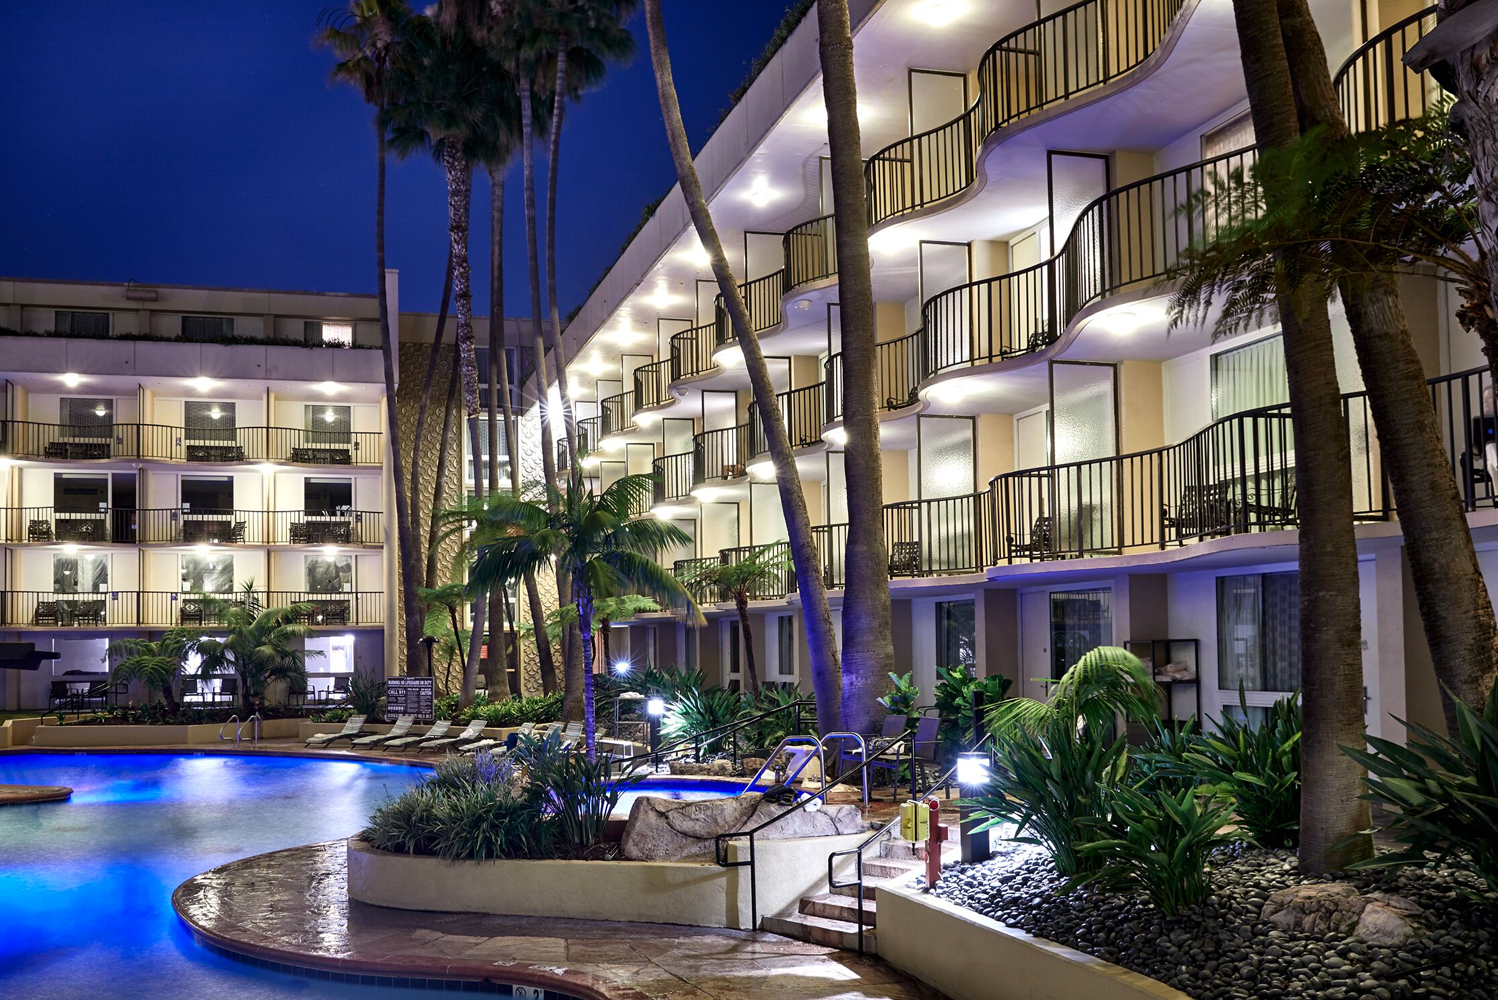 The Los Angeles Airport Marriott (LAX Marriott) completed the final phase of its $50 million transformation.